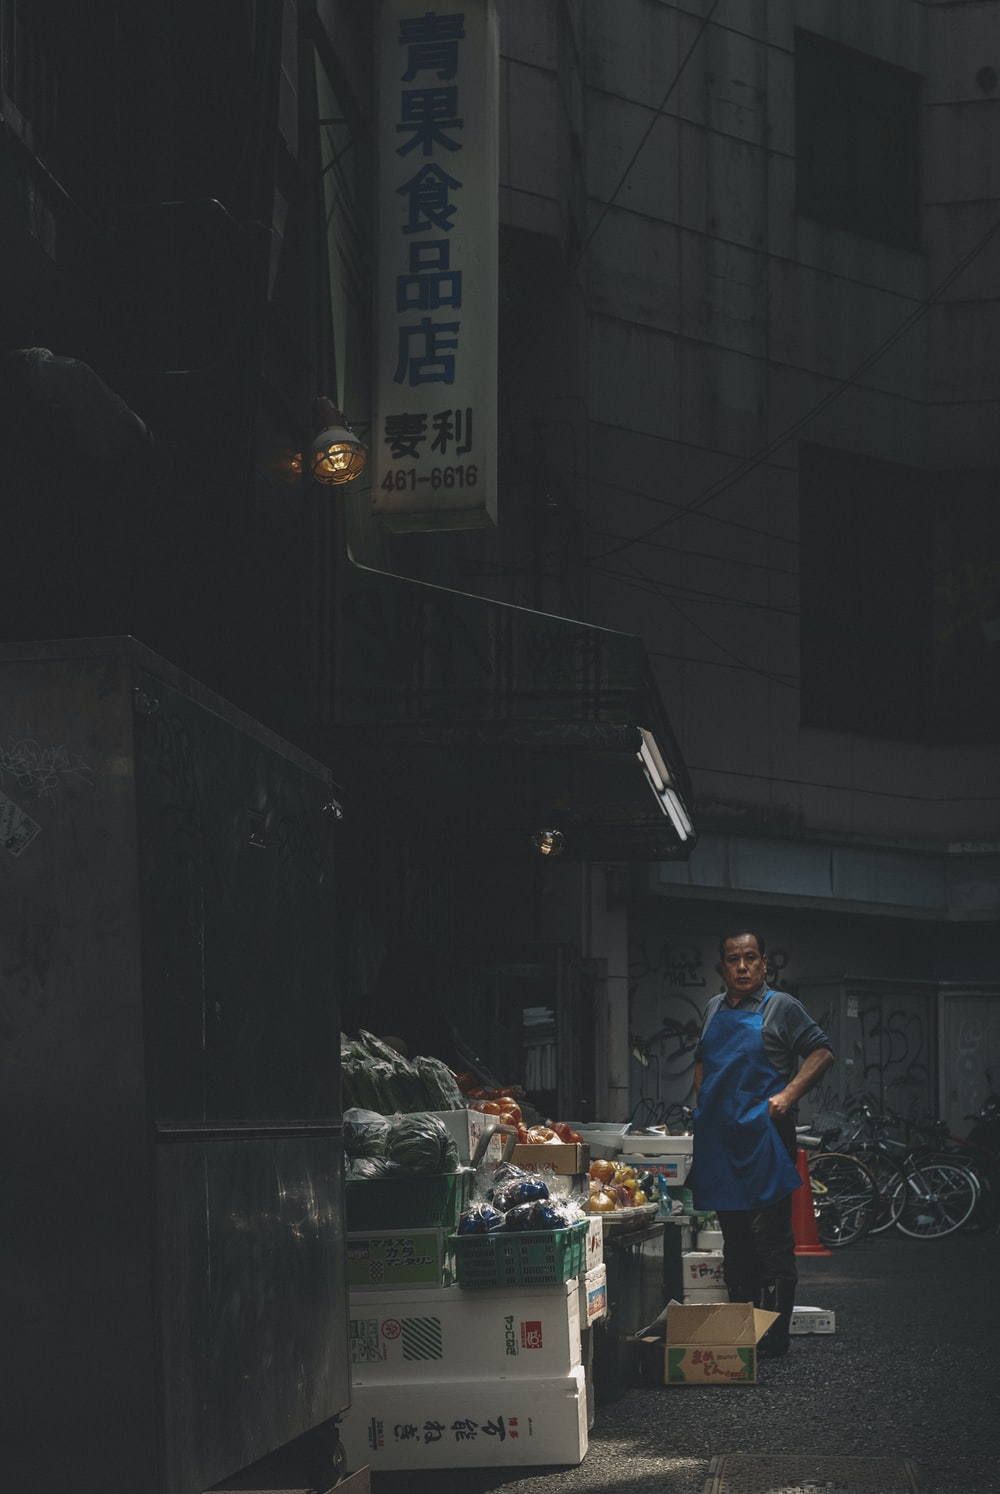 man in red t-shirt and blue denim jeans standing near food stall during nighttime